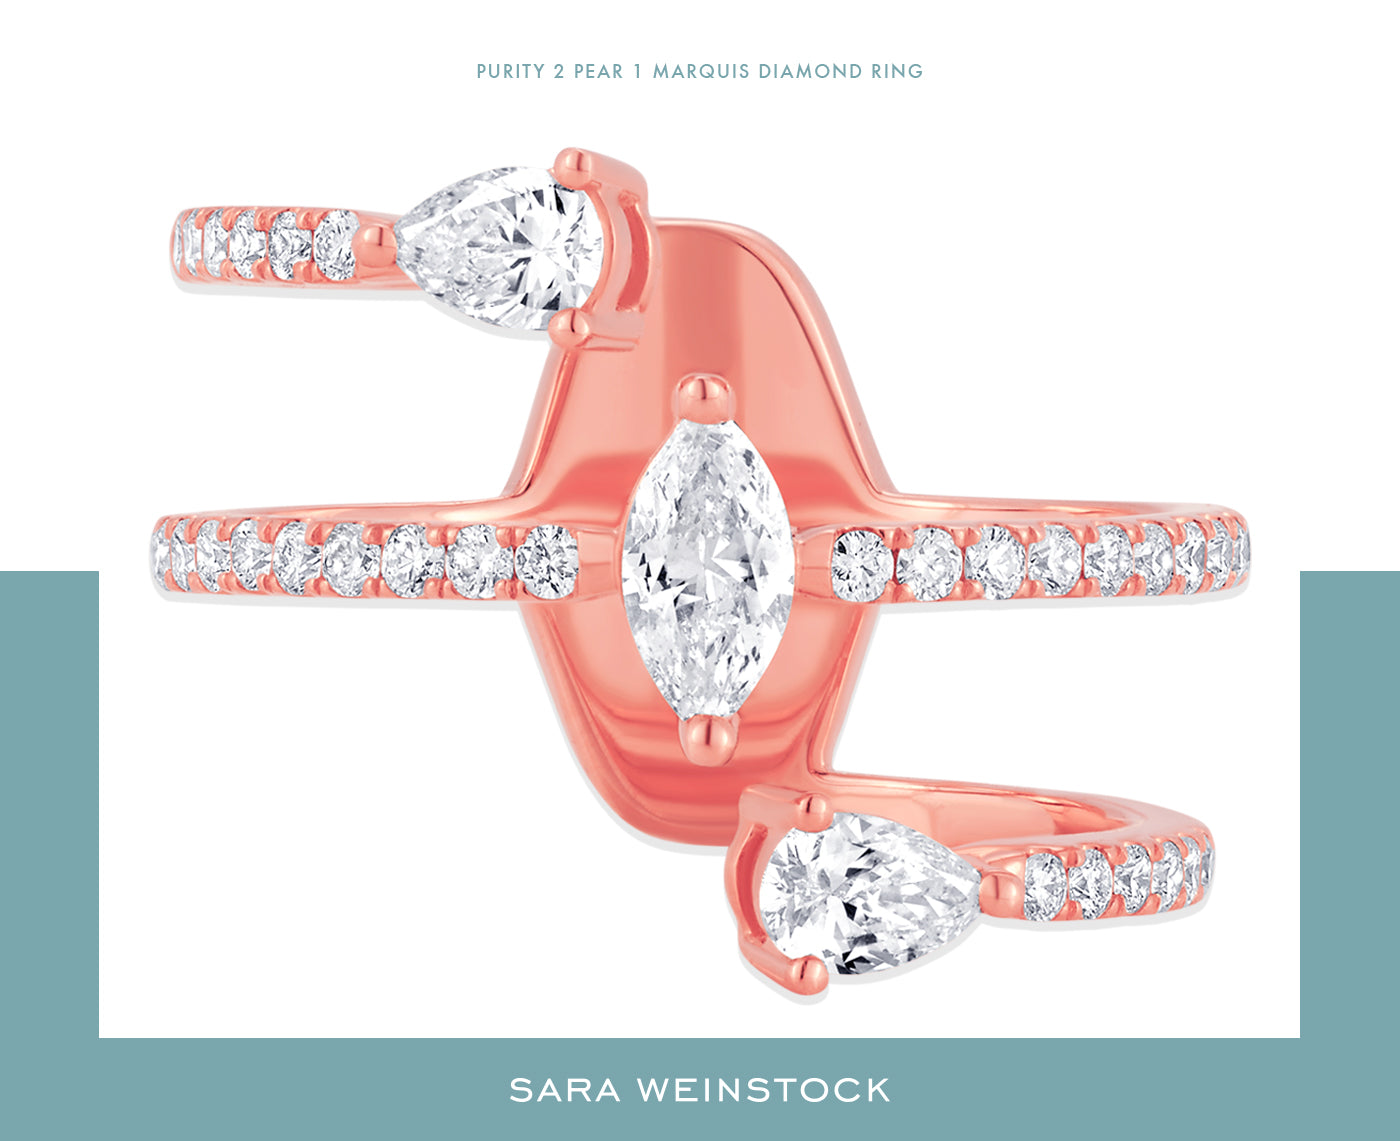 Purity 2 Pear 1 Marquis Diamond Ring - Sara Weinstock